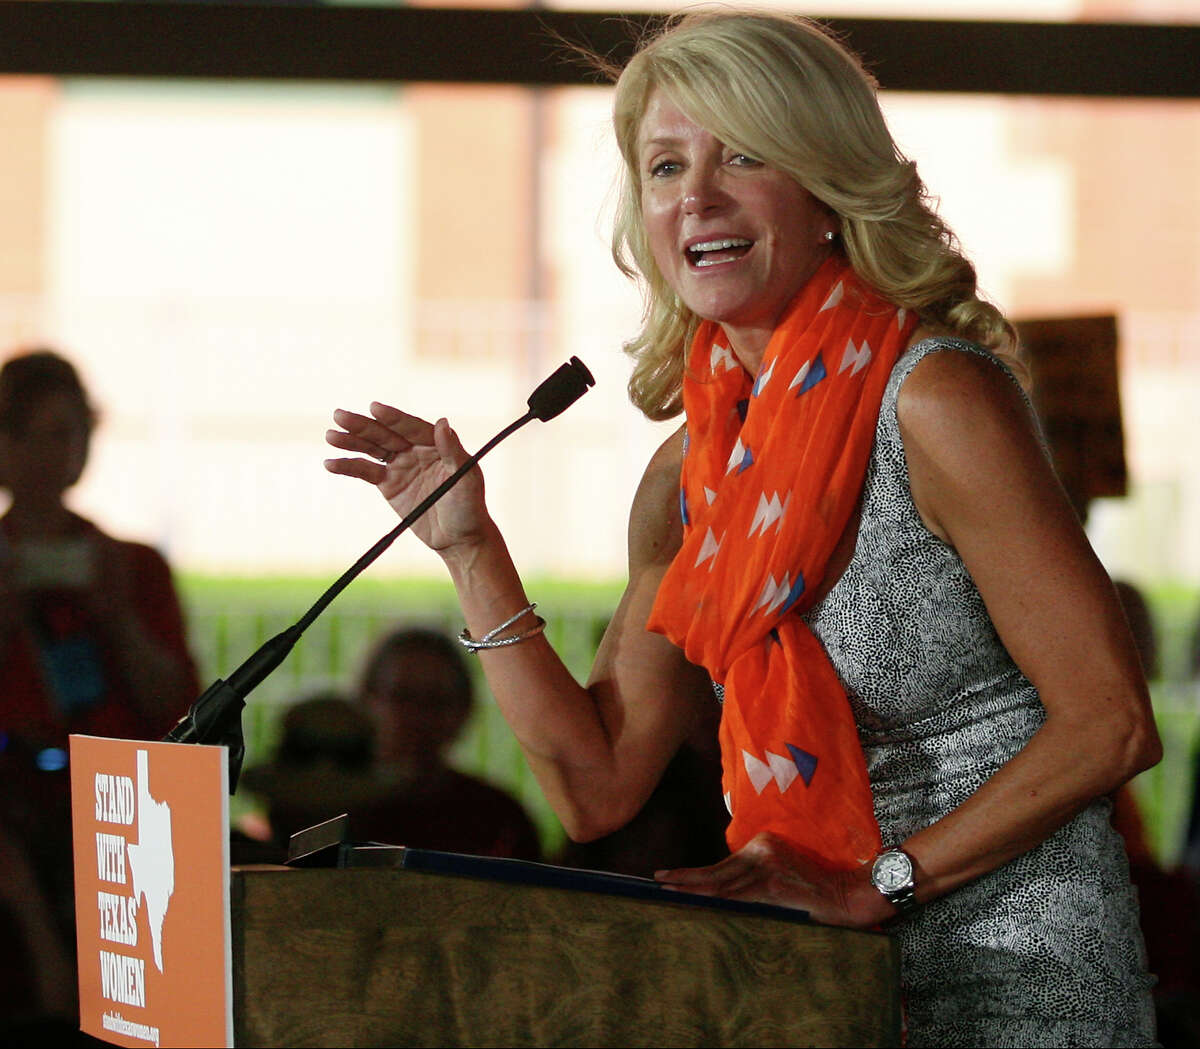 Fort Worth Sen. Wendy Davis addresses the crowd July 11, 2013 attending Planned Parenthood Action Fund's Stand with Women bus tour rally at Sunset Station in San Antonio after kicking off on Tuesday in Austin. The rally, which brought out several hundred people had several speakers, including San Antonio mayor Julian Castro.